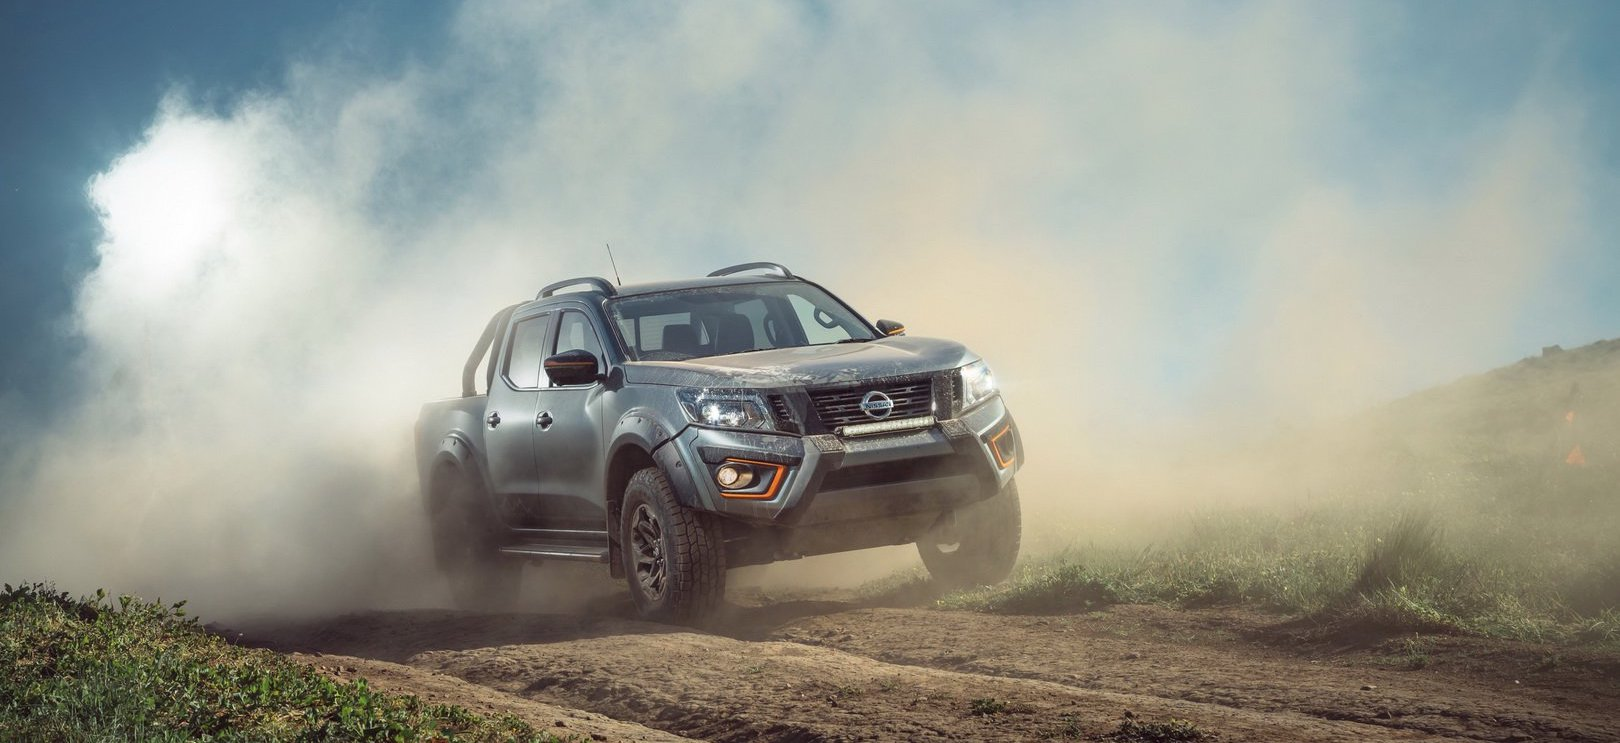 Nissan Navara Welcomes N-Trek Warrior Off-Road Pickup Truck In Australia